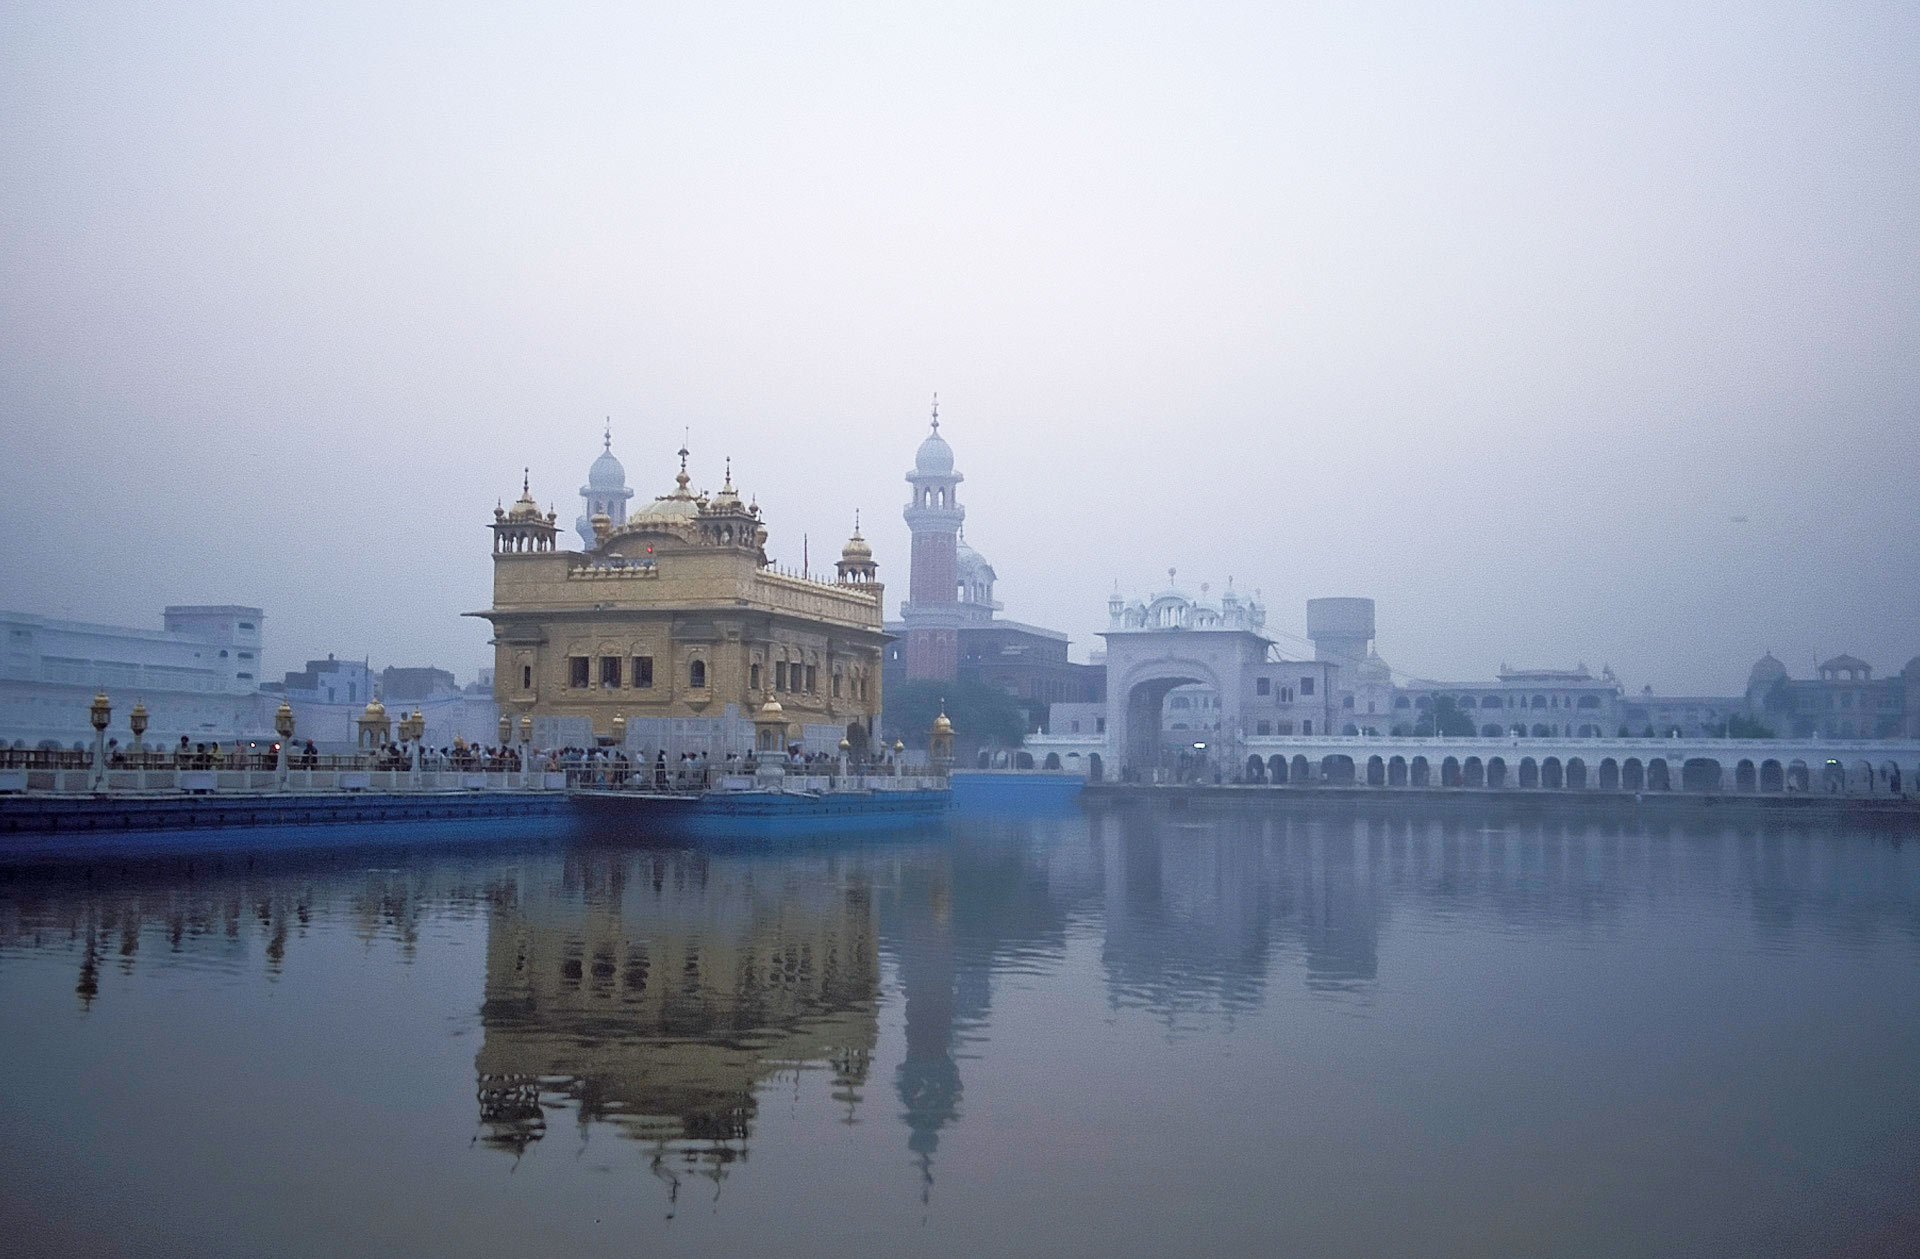 Hari Mandir Sahib (Golden Temple) with reflections in the Pool of Nectar at dawn, Amritsar, Punjab, India